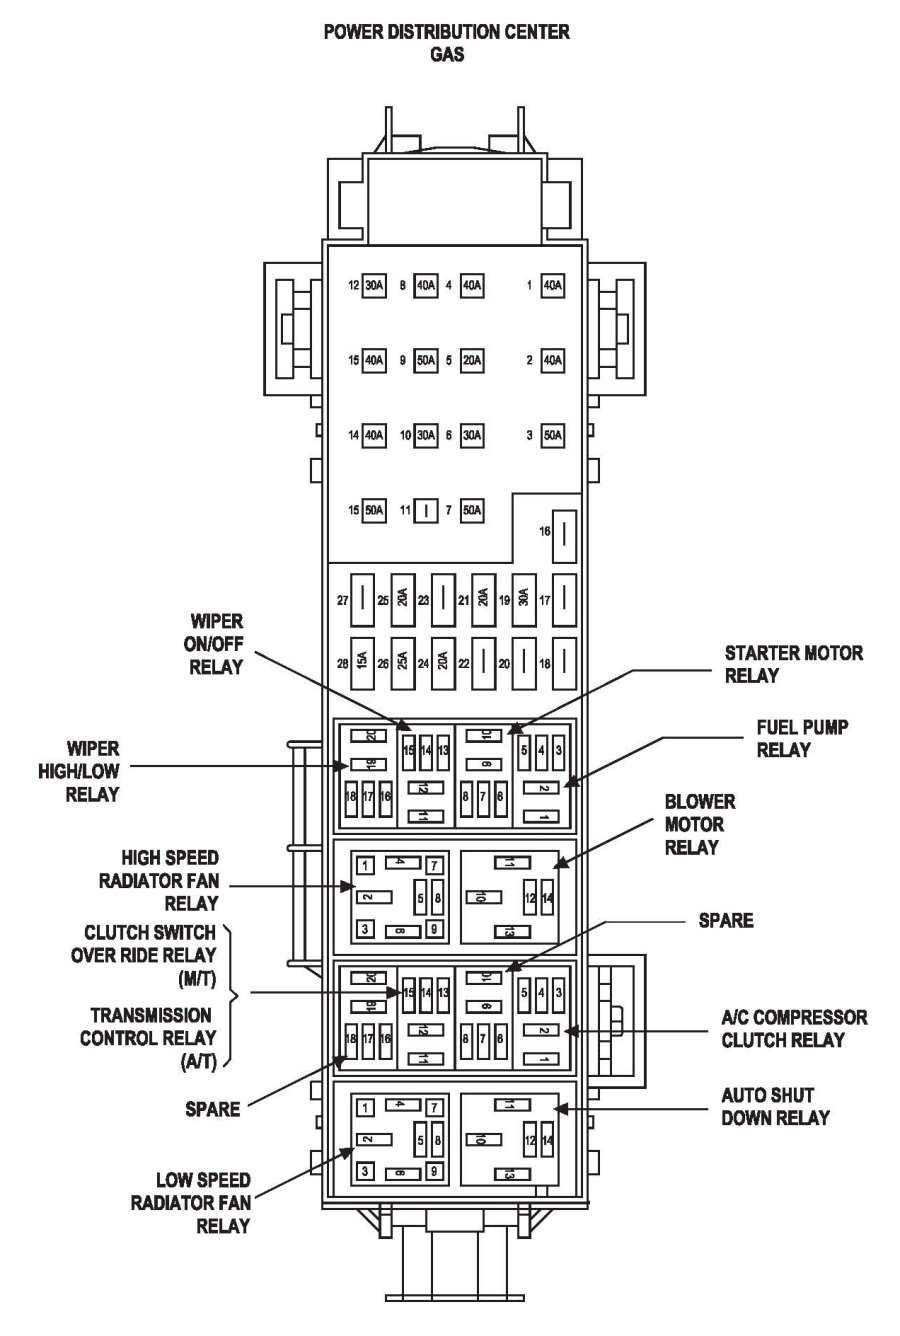 hight resolution of 2004 jeep cherokee fuse box diagram layout wiring diagram for you 1996 jeep cherokee fuse box